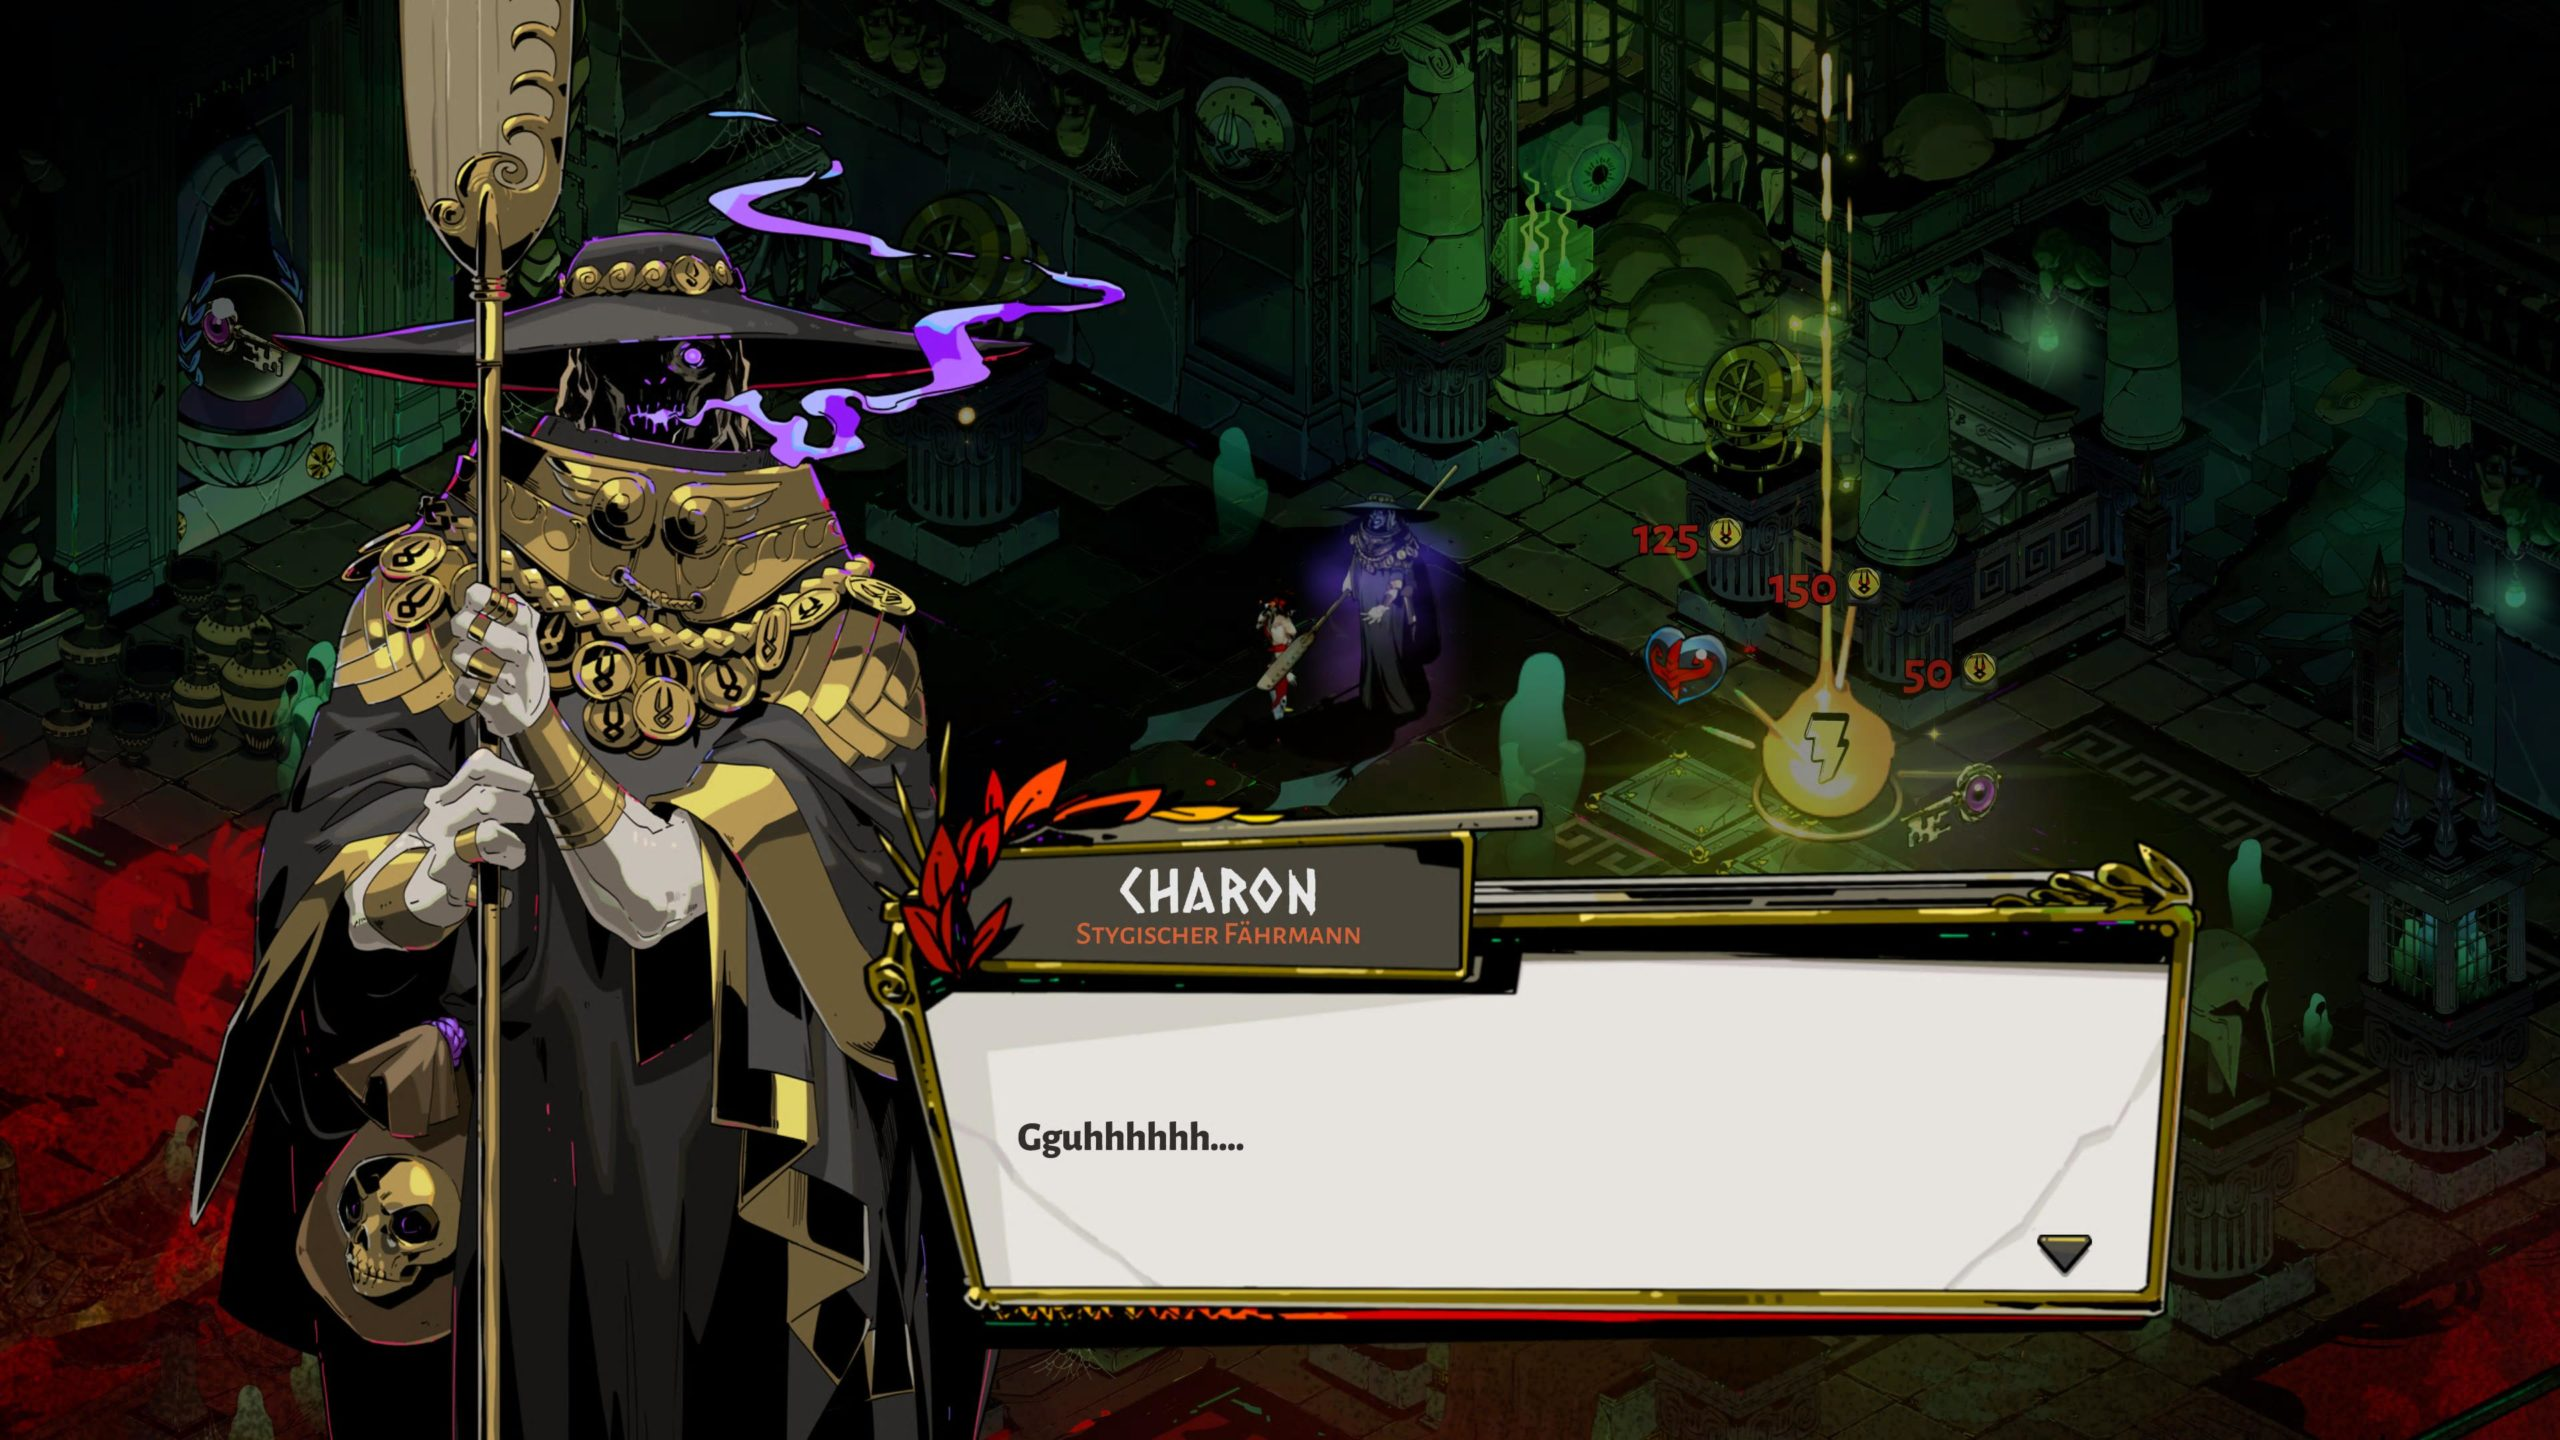 Charon Hades © Supergiant Games